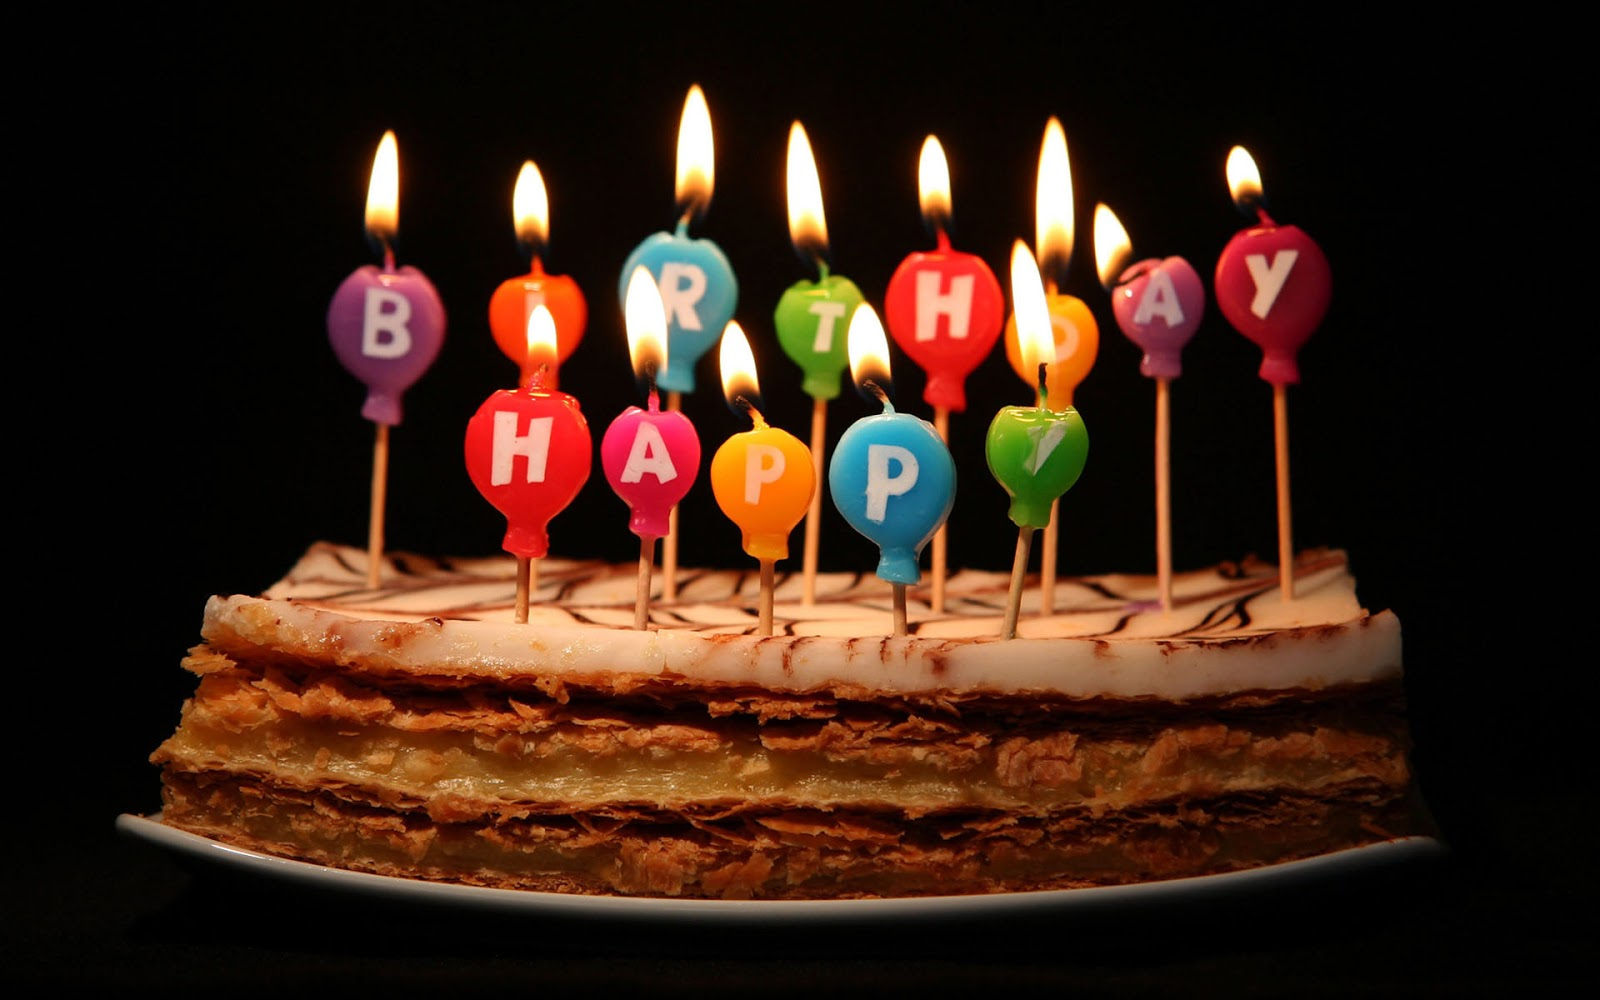 birthday wishes pics hd ; candles-birthday-cake-with-black-background-images